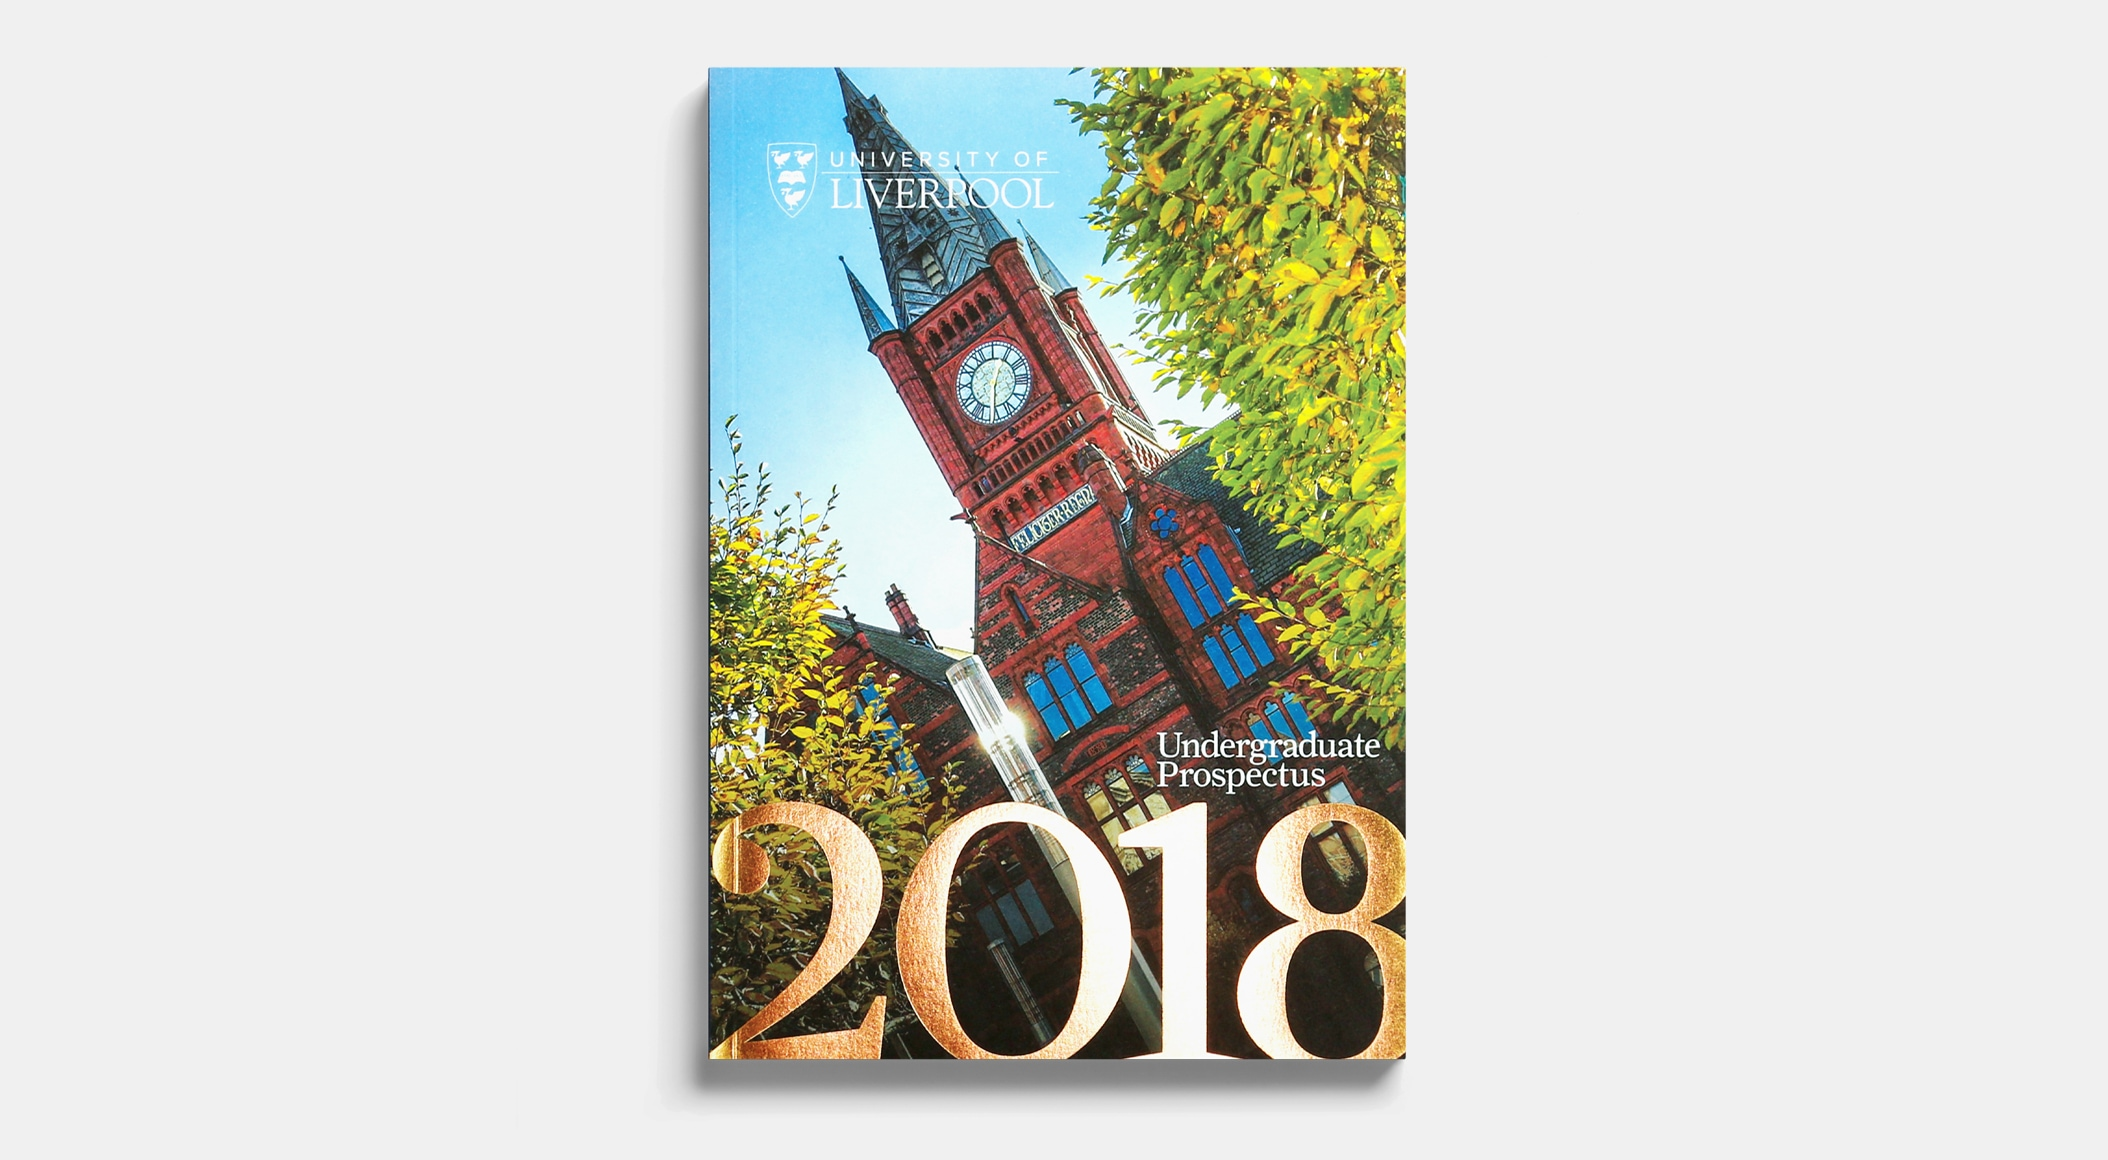 University of Liverpool Prospectus 2018 - front cover